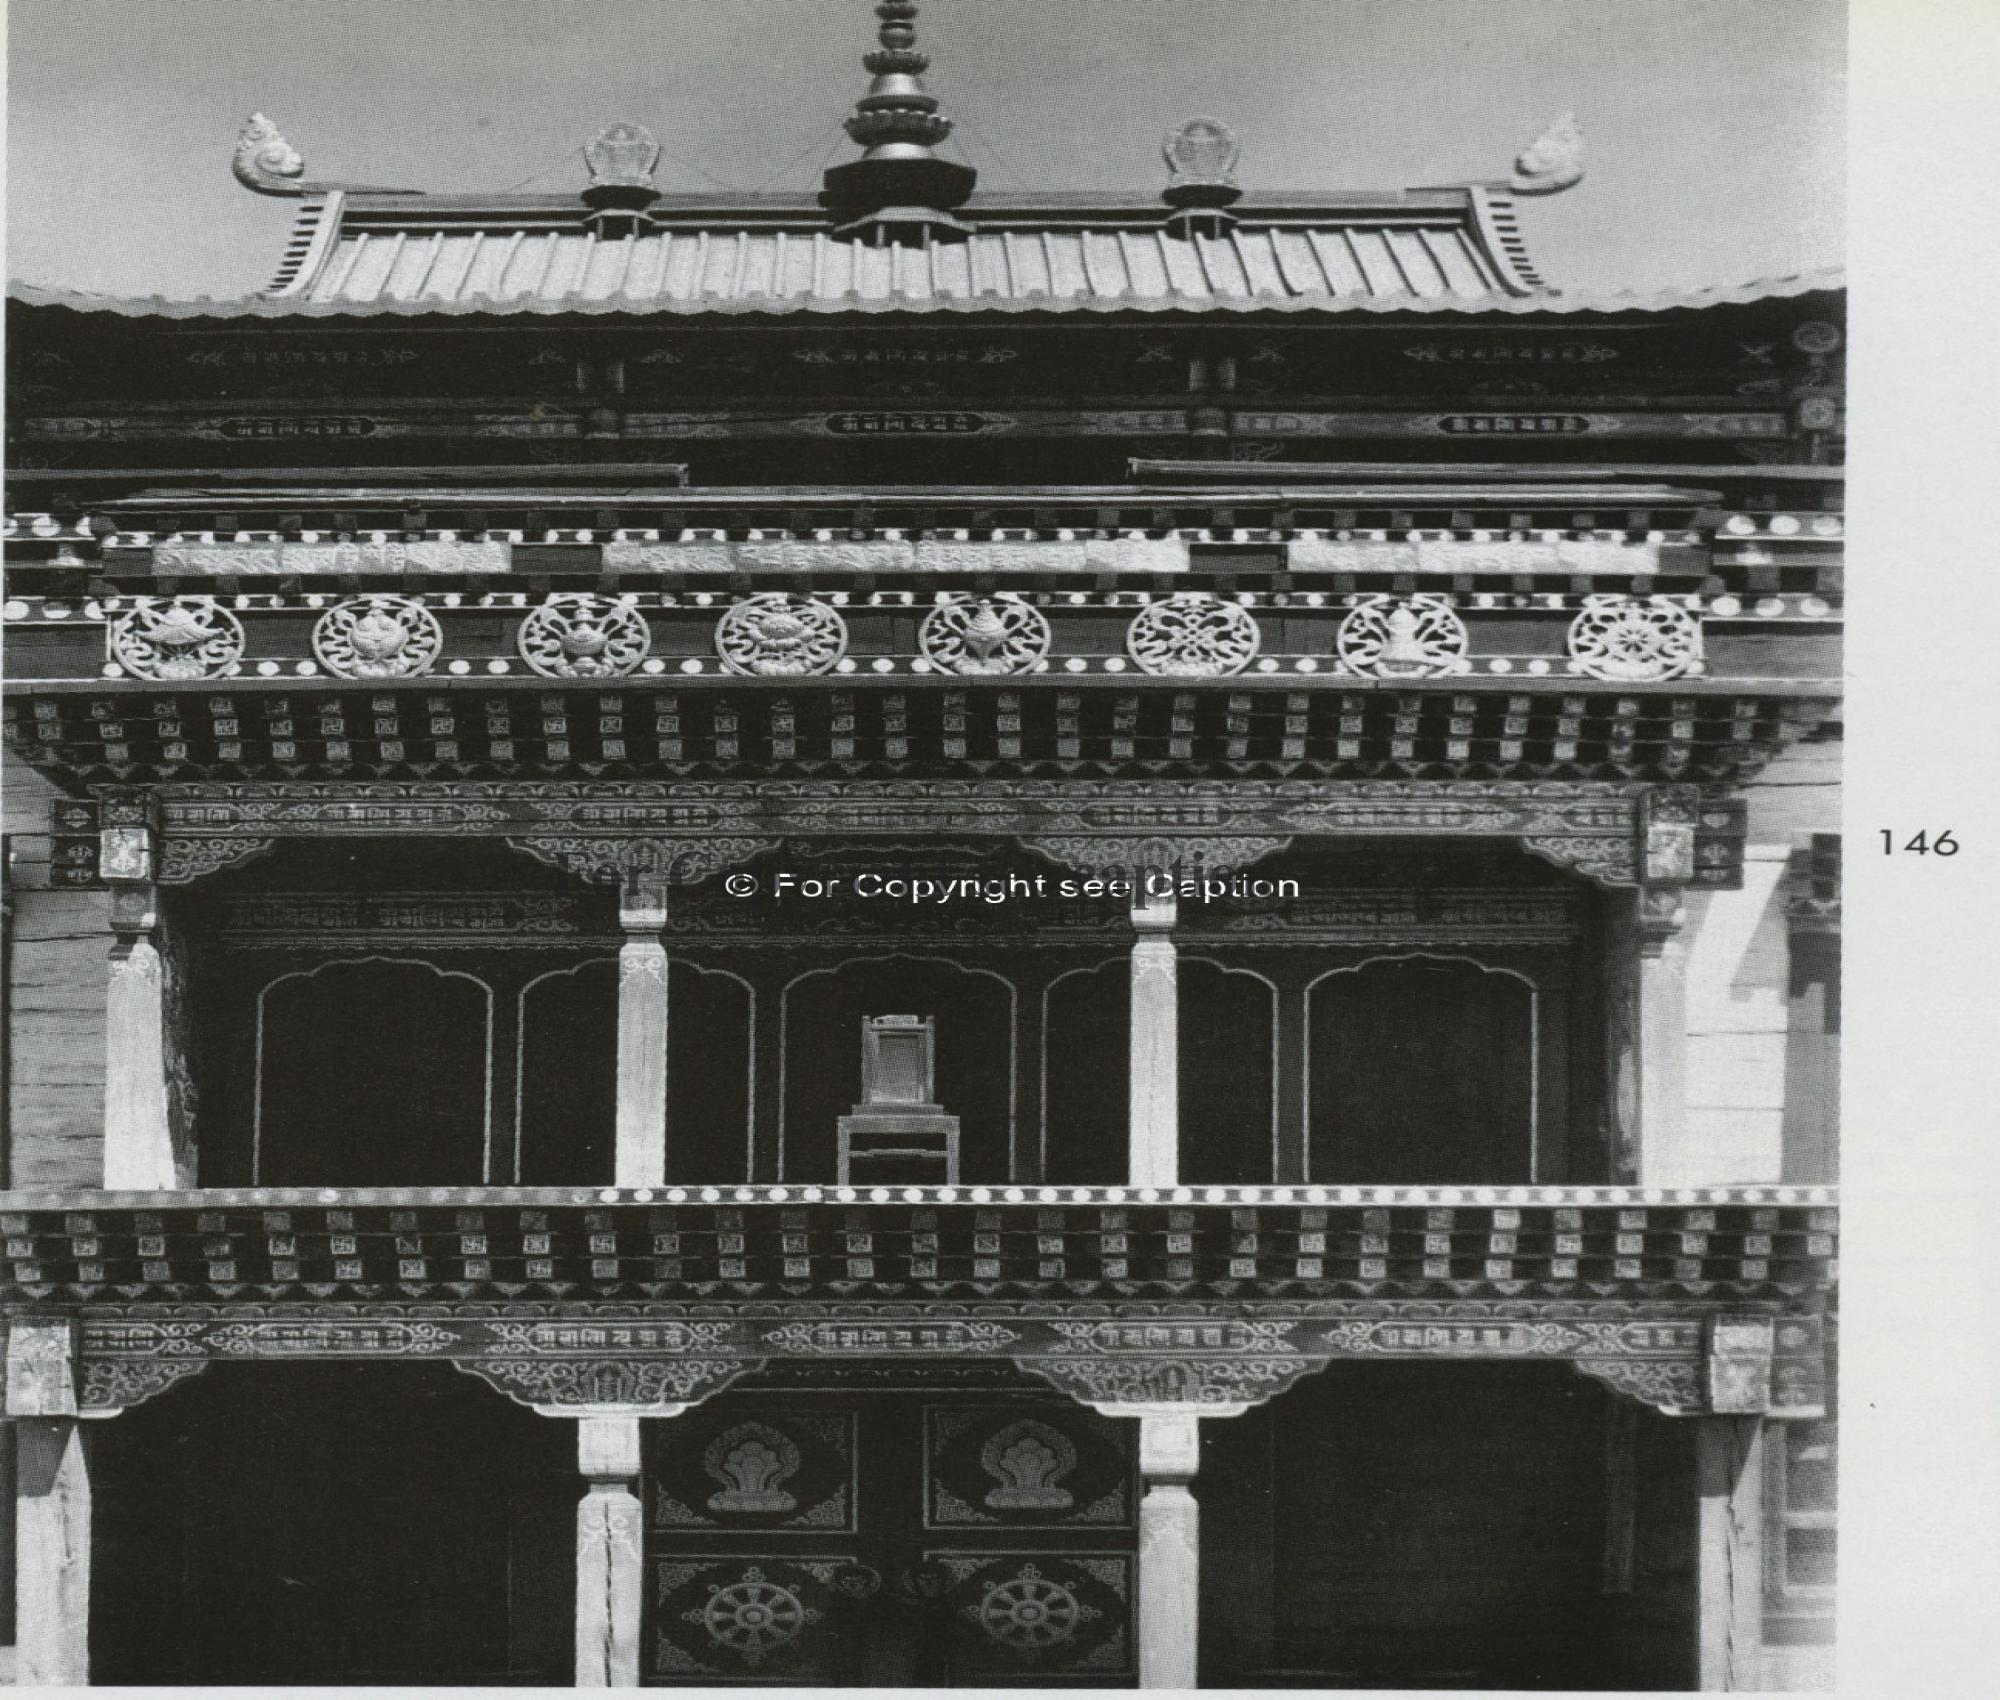 The facade of the temple. Tsültem, N., Mongolian Architecture. Ulaanbaatar 1988, 146